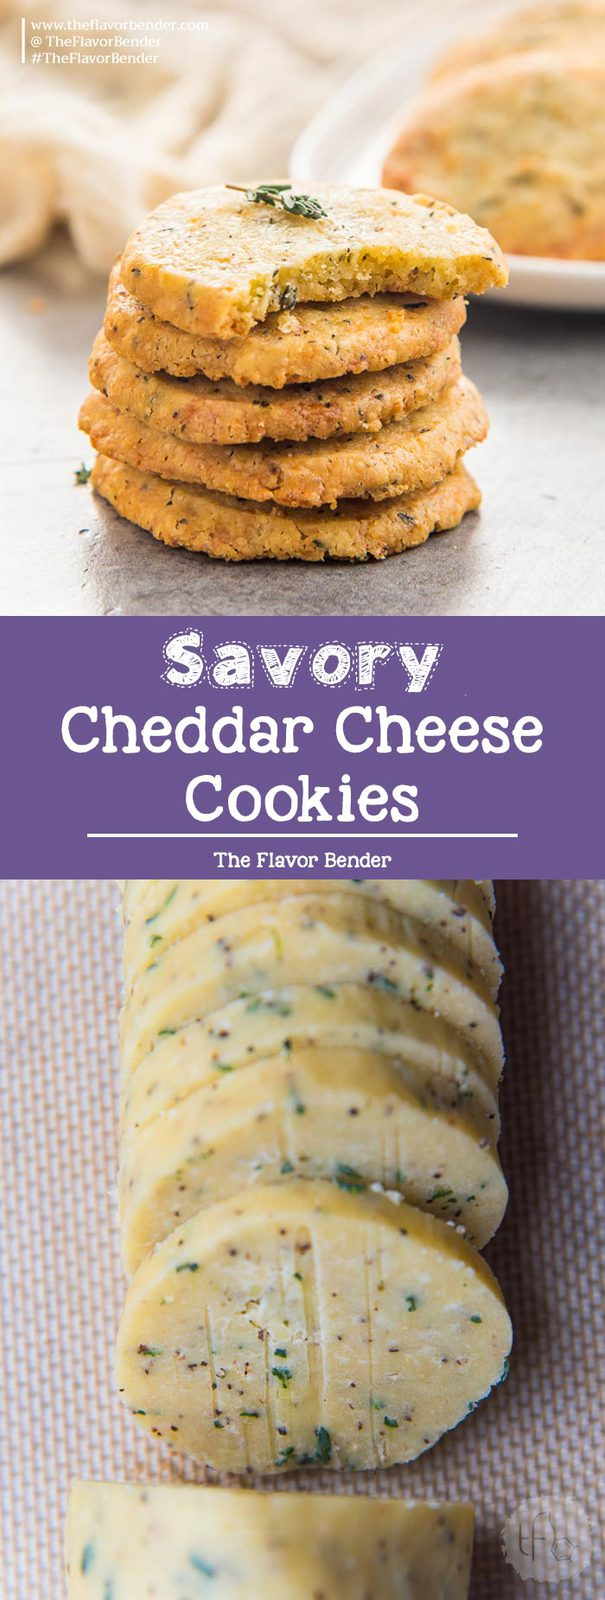 Thyme and Cheddar Cheese Cookies - These slice and bake savory cookies are easy to make and delicious! Perfect as appetizers or as snacks. #SliceAndBakeCookies #SavoryCookies #CheeseShortbread #Cheeseboard #Appetizers